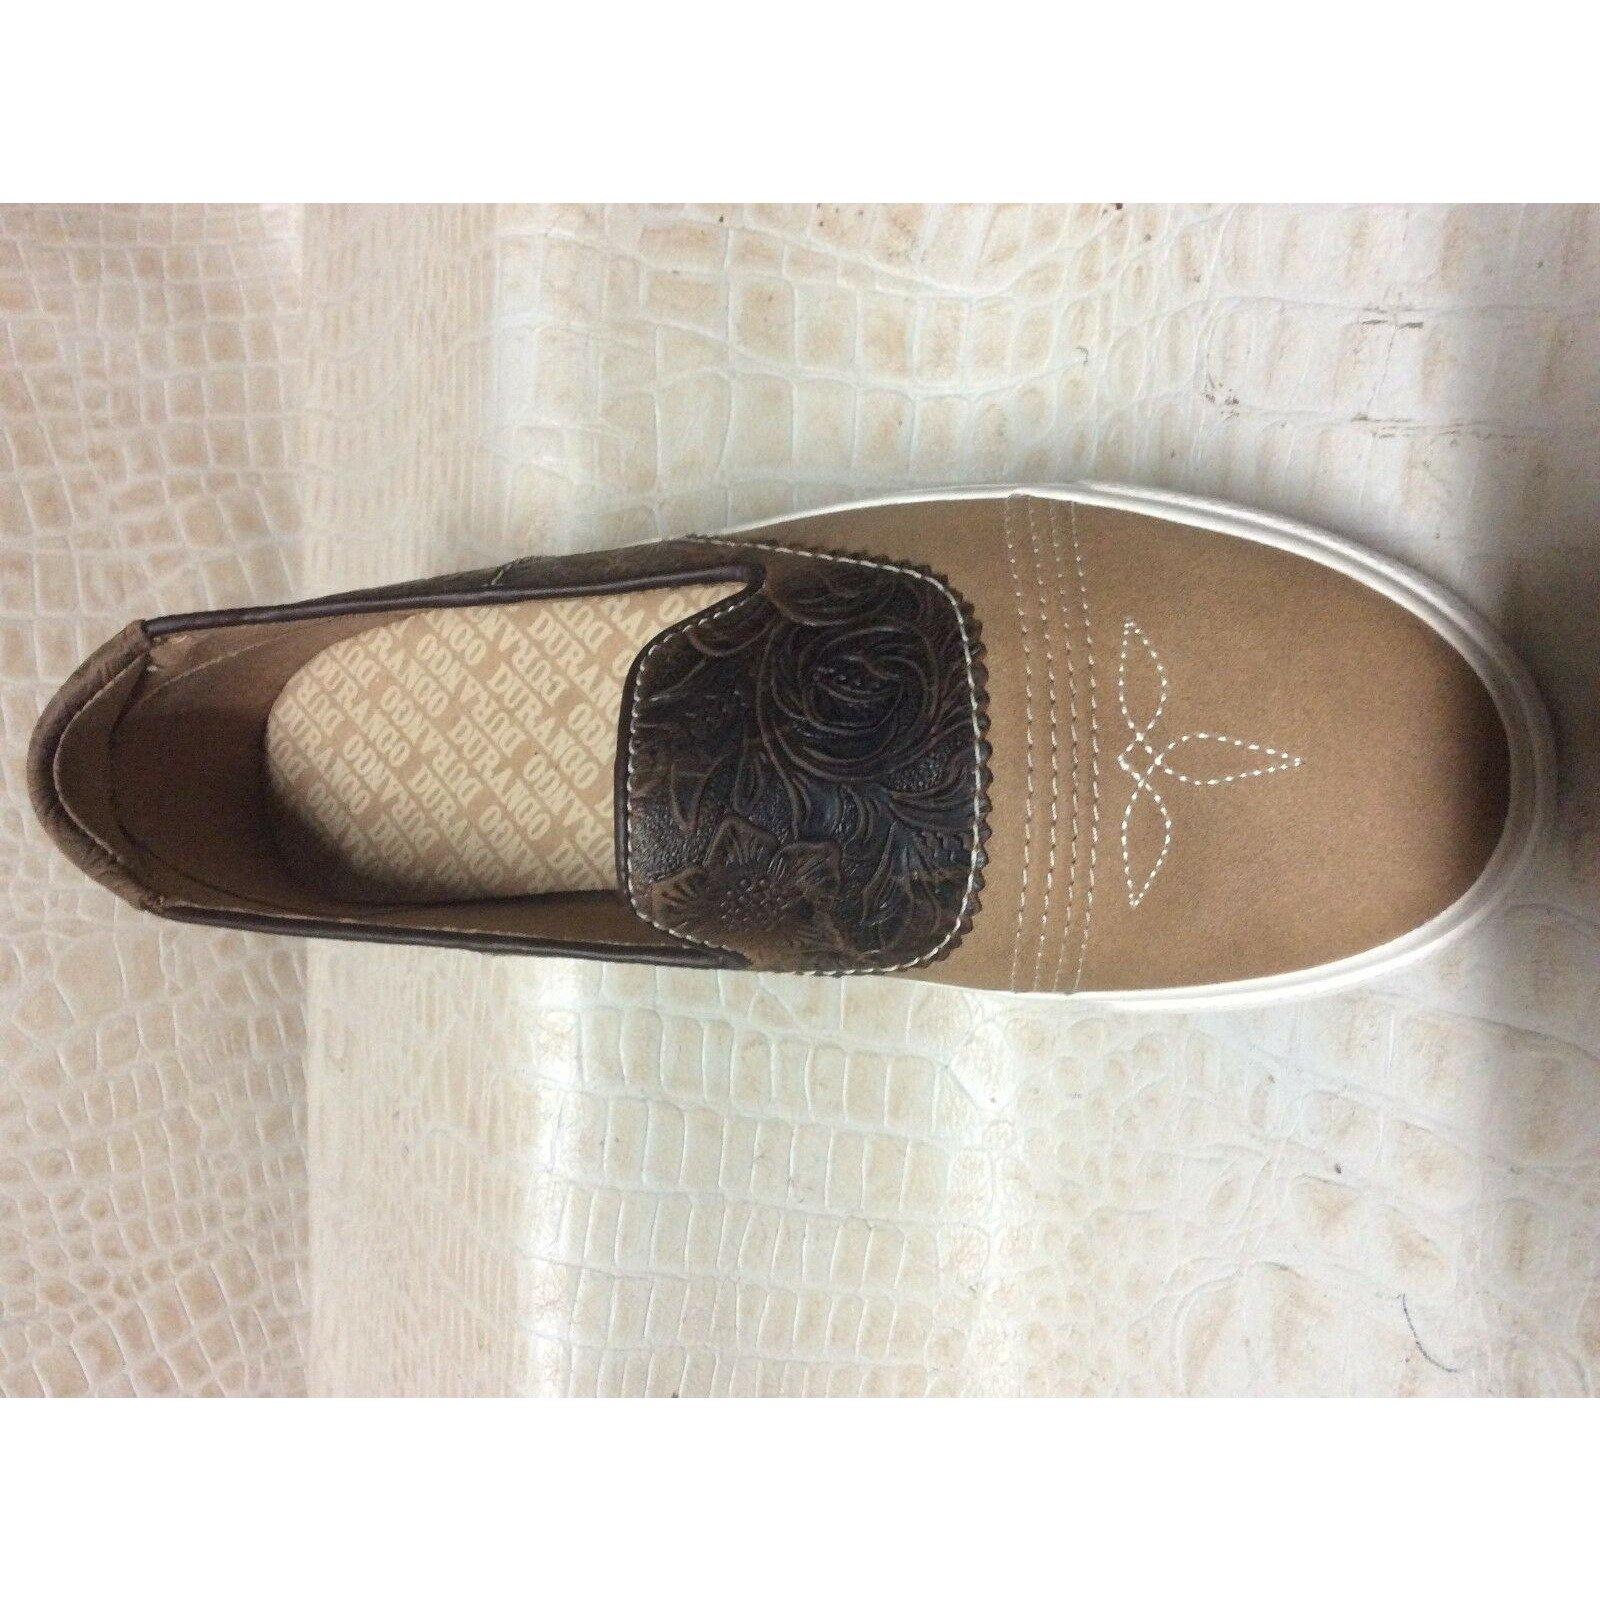 Womens Durango Leather tooled Brown Slip-On Shoes vans - CWesternwear